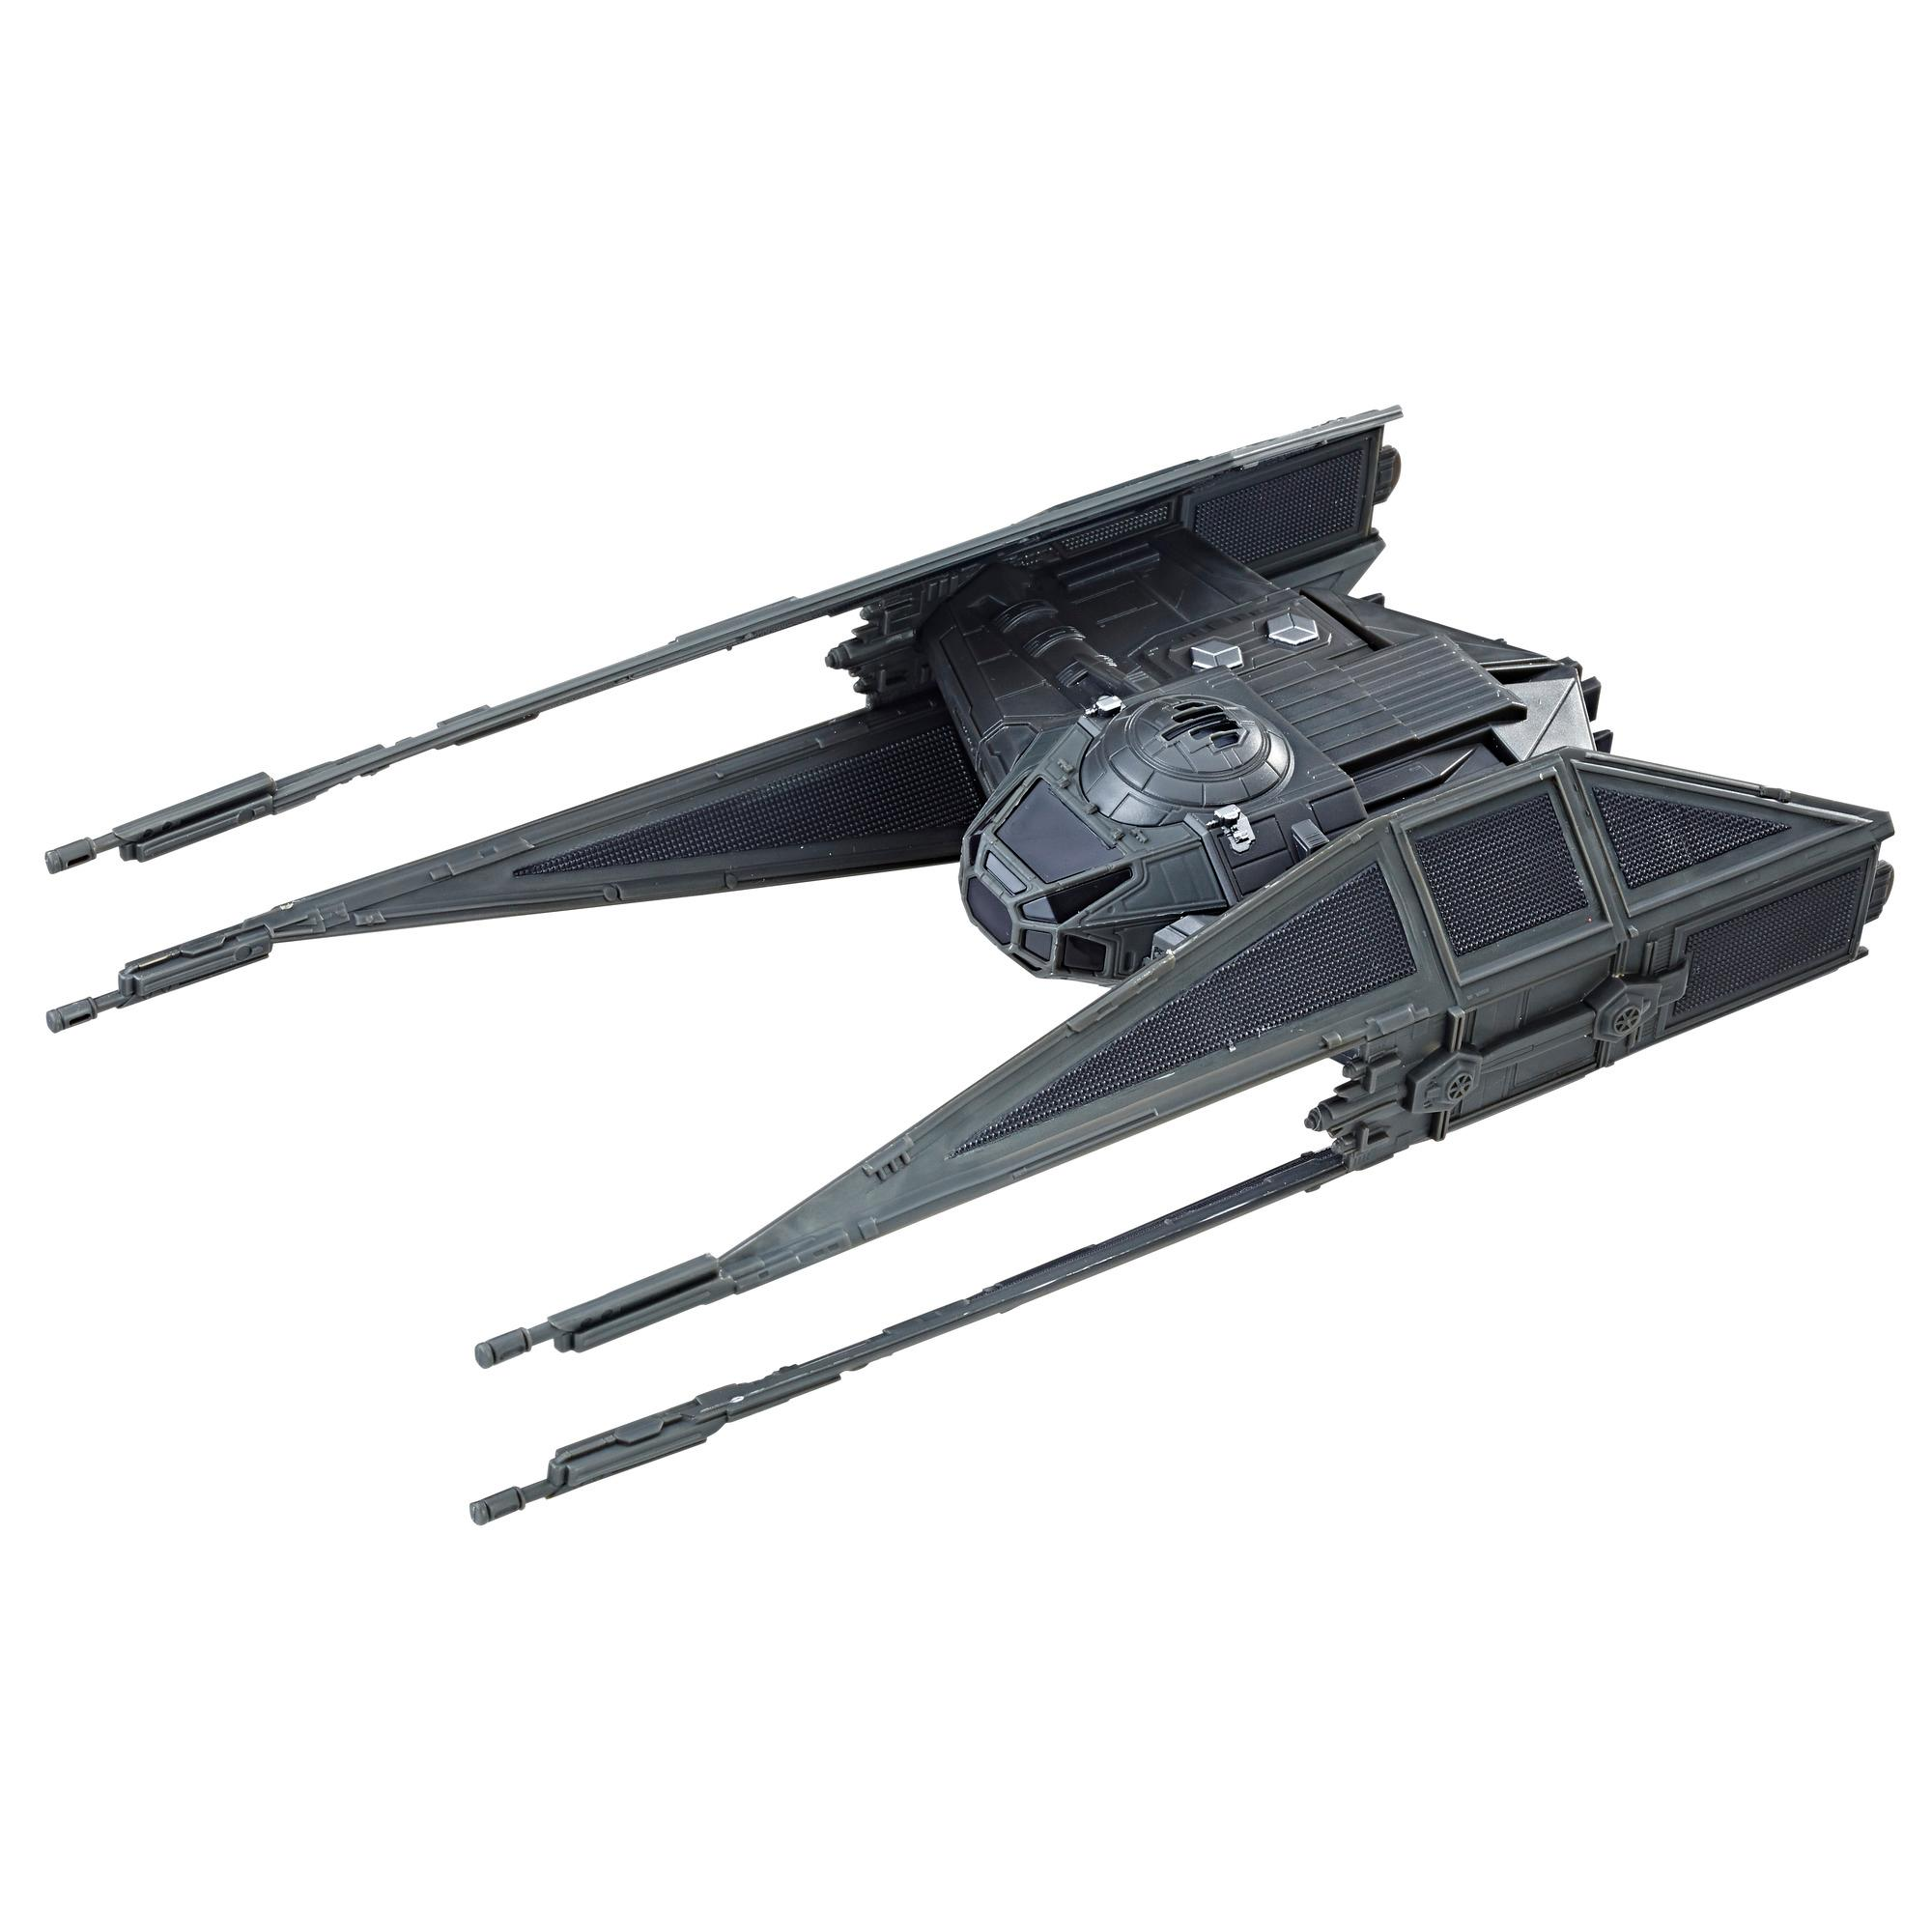 Star Wars: The Last Jedi Kylo Ren's TIE Silencer